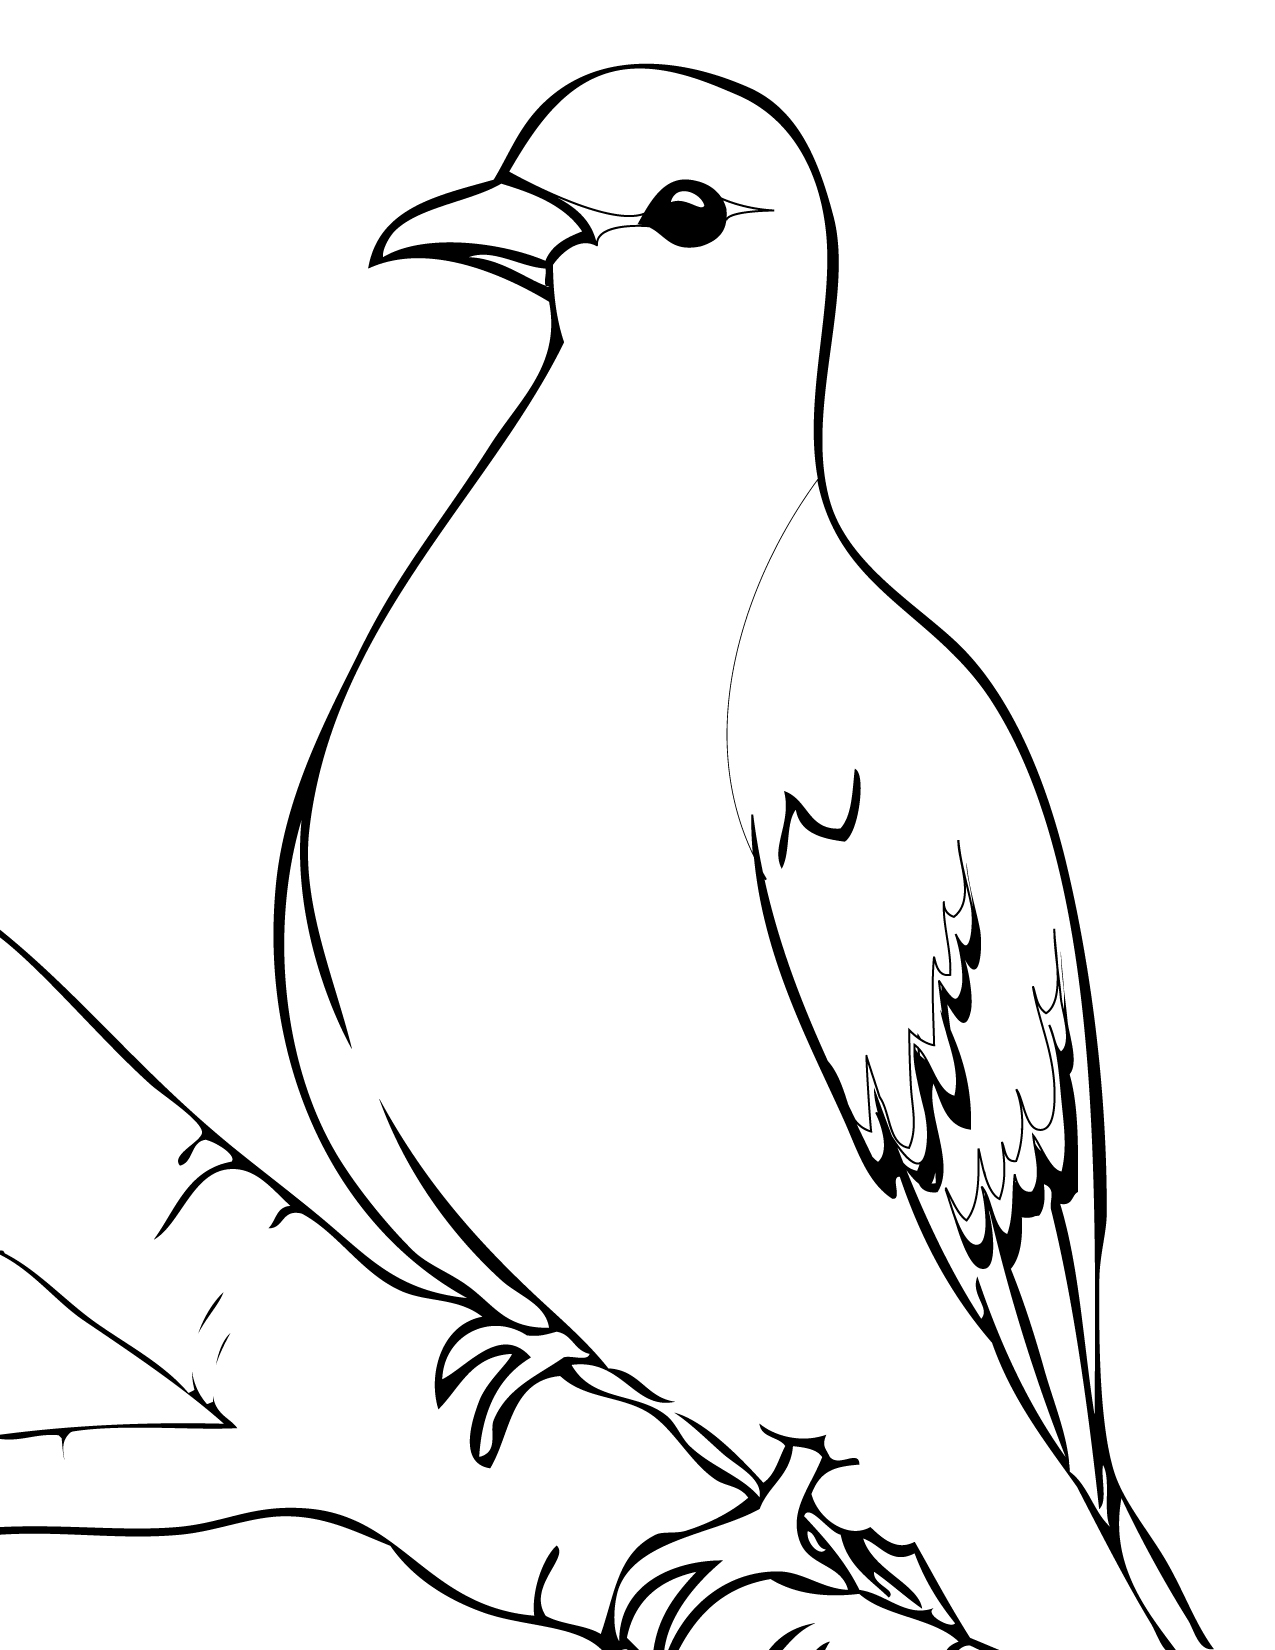 Turtle Dove coloring #12, Download drawings